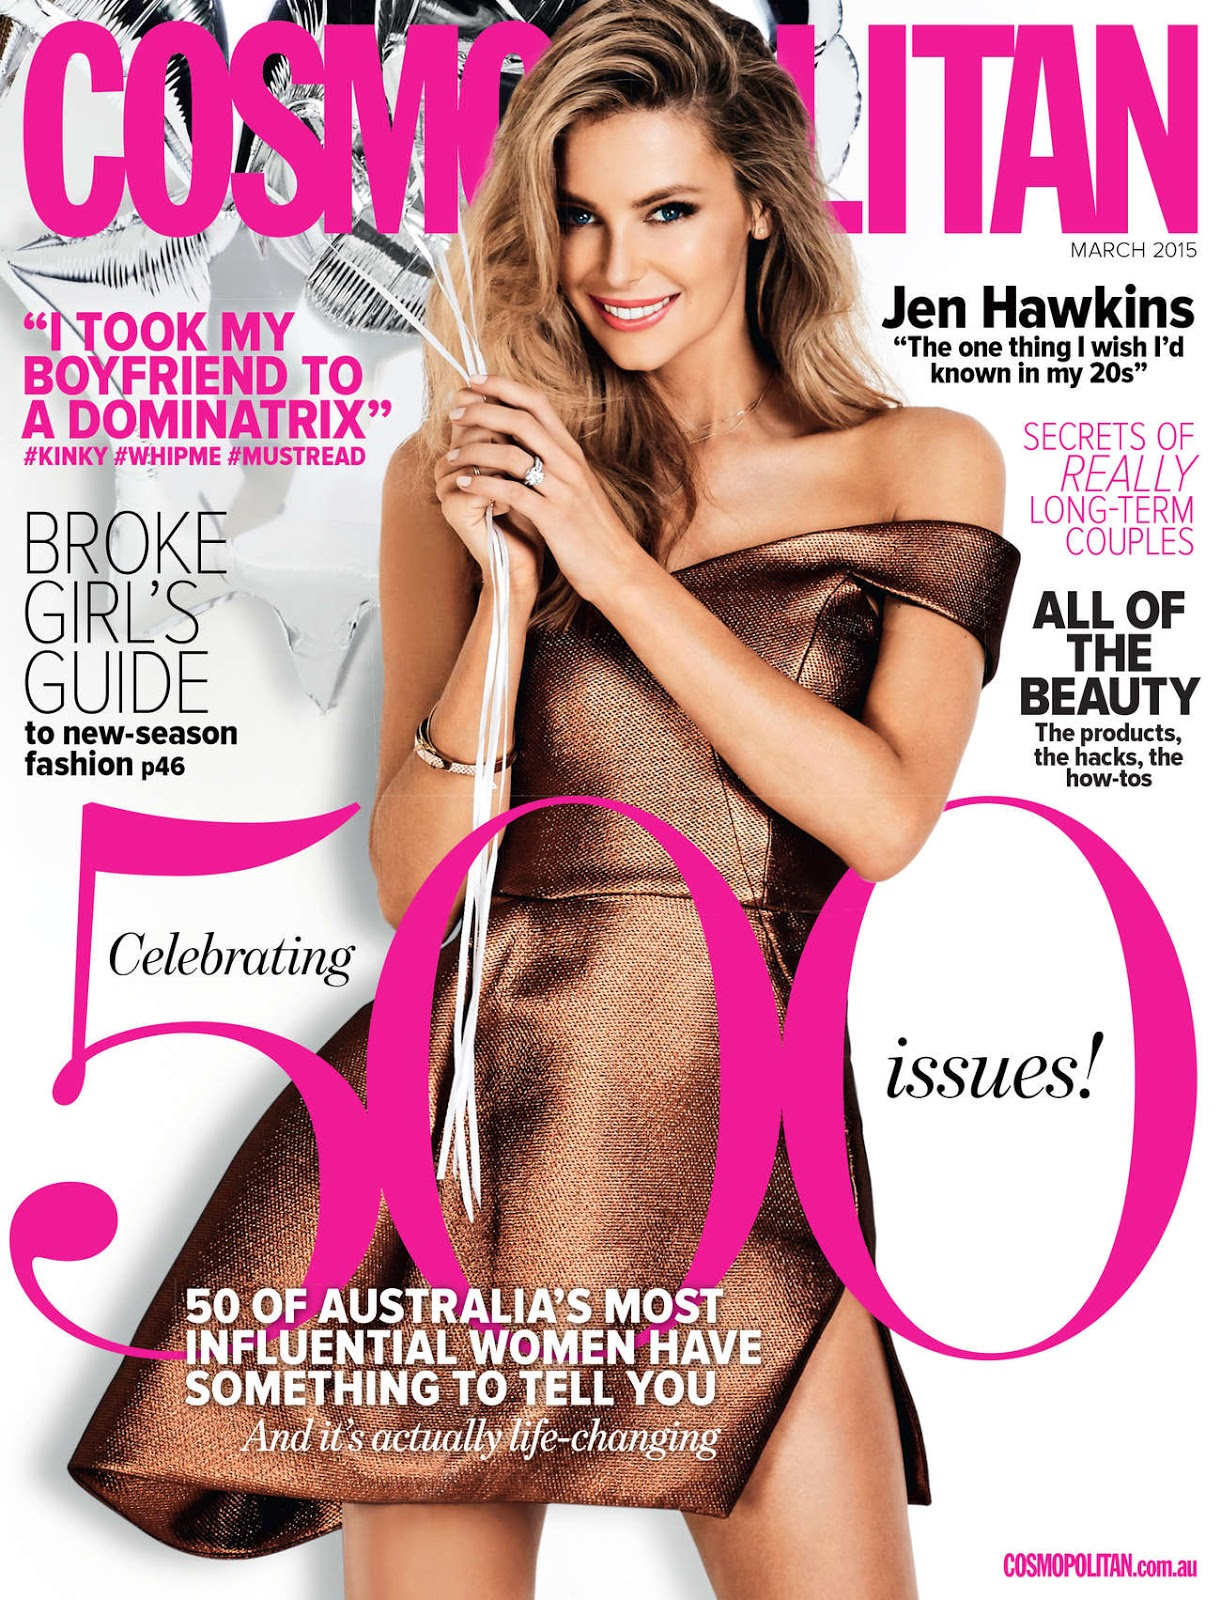 Model: Jennifer Hawkins for Cosmopolitan Australia